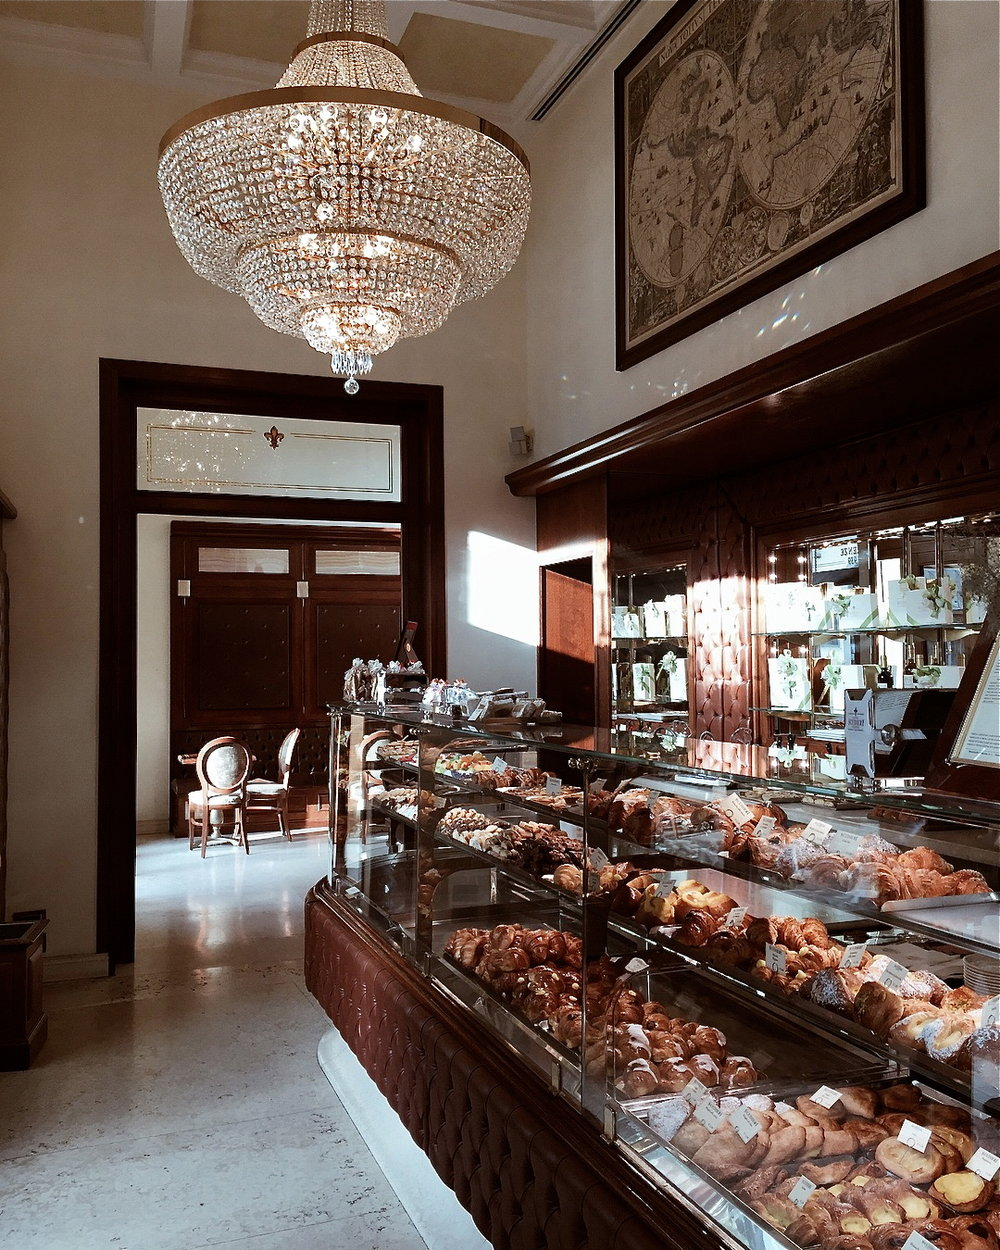 Caffe Scudieri, Florence, Italy